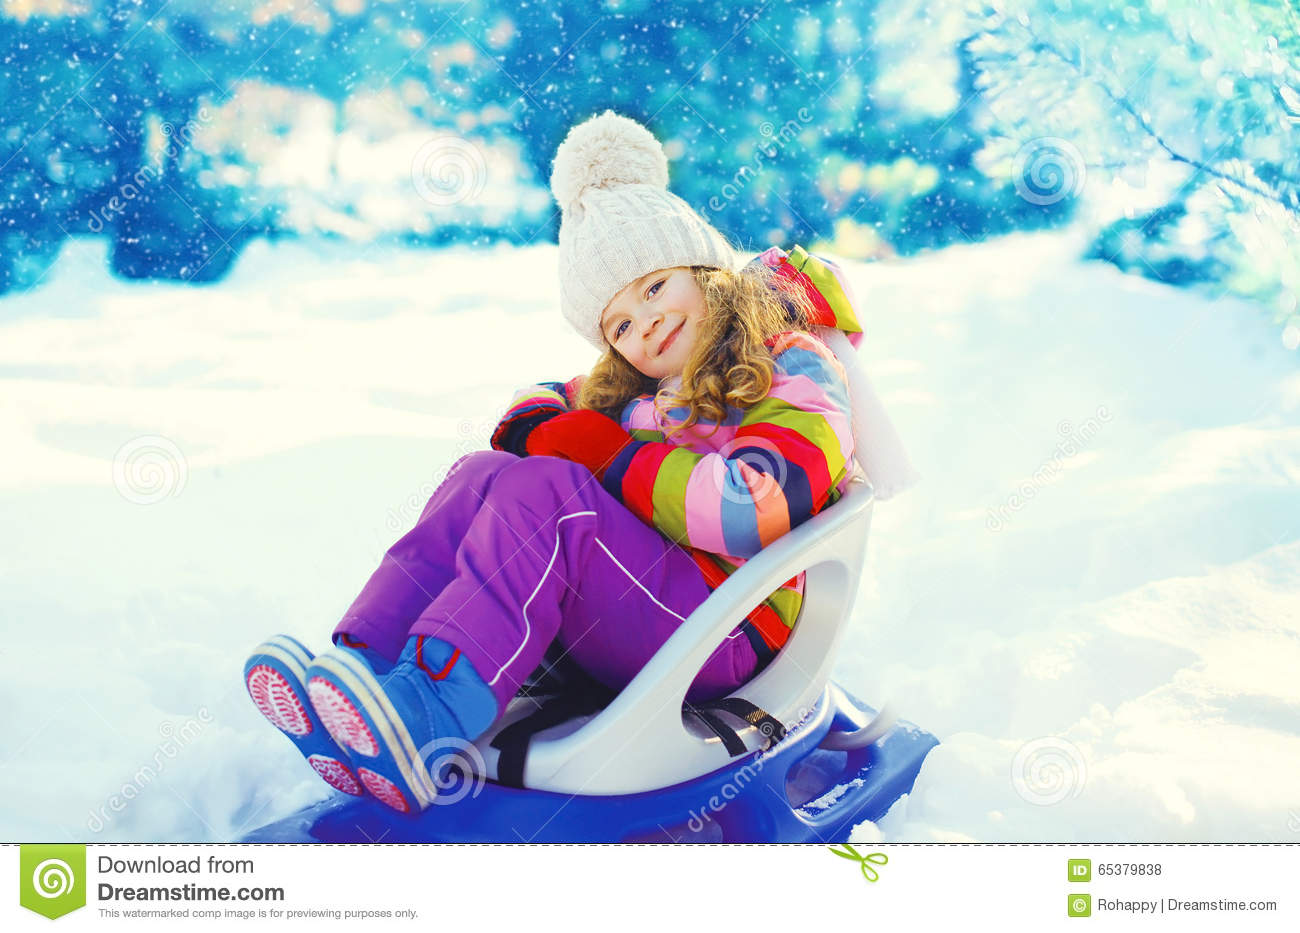 Smiling little child sitting on sled in winter